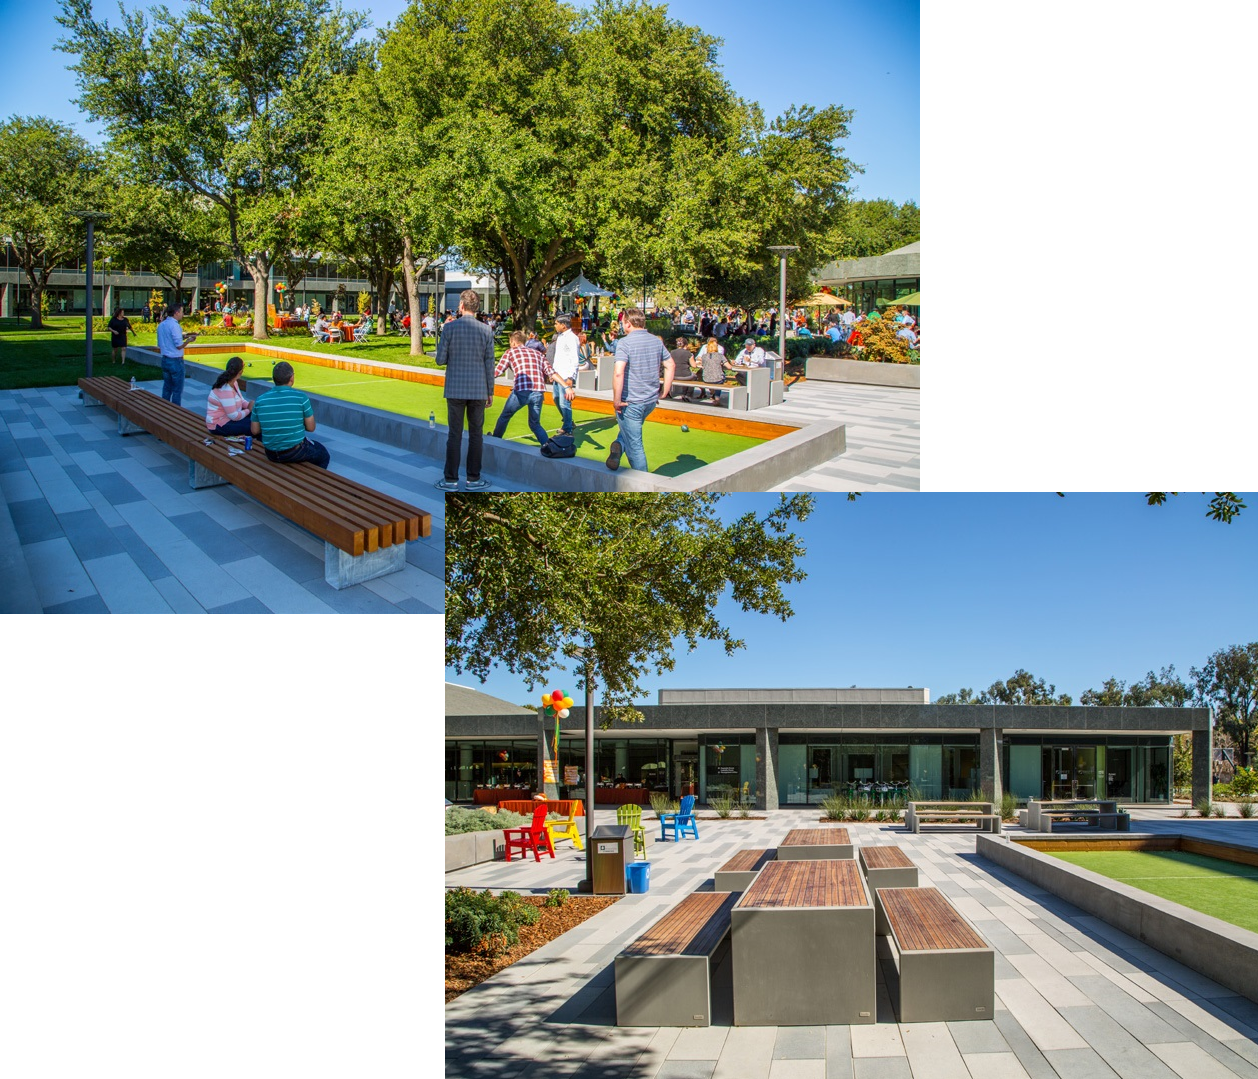 Bocce Courts & Picnic Area - Test yourself against your coworkers at the Bocce Courts!Varies